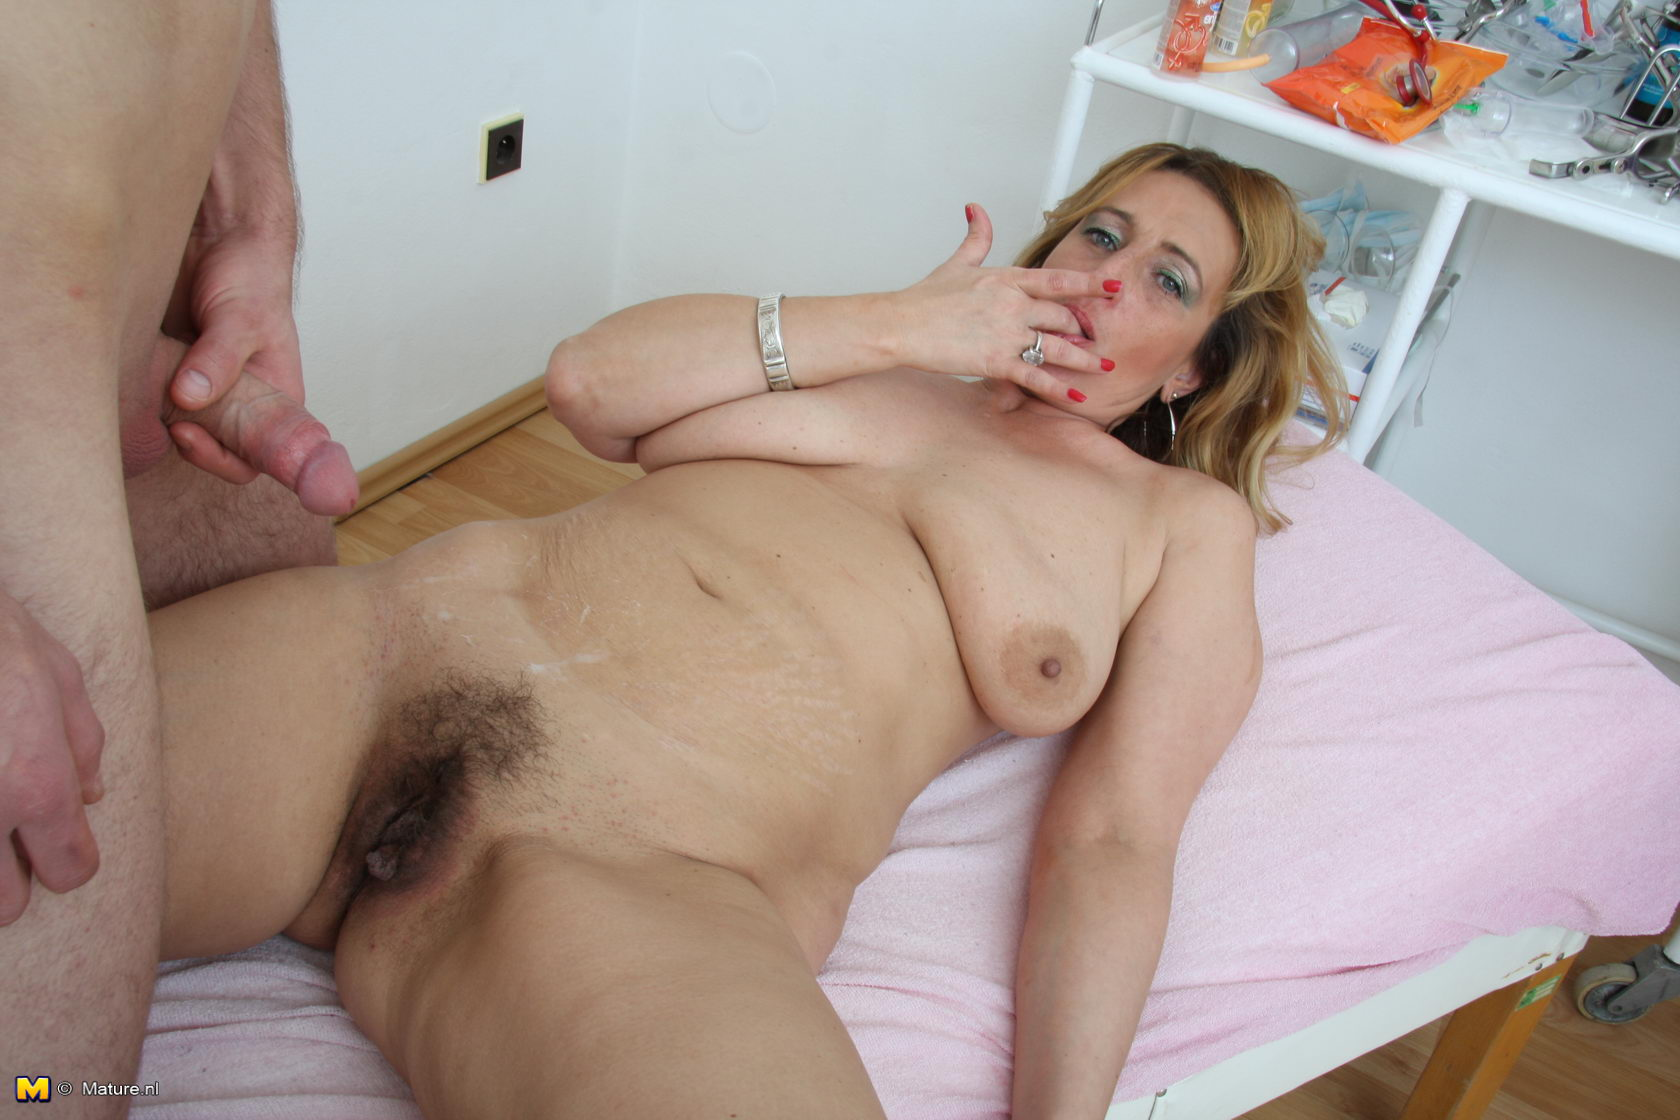 Free mature porn picture galleries #11